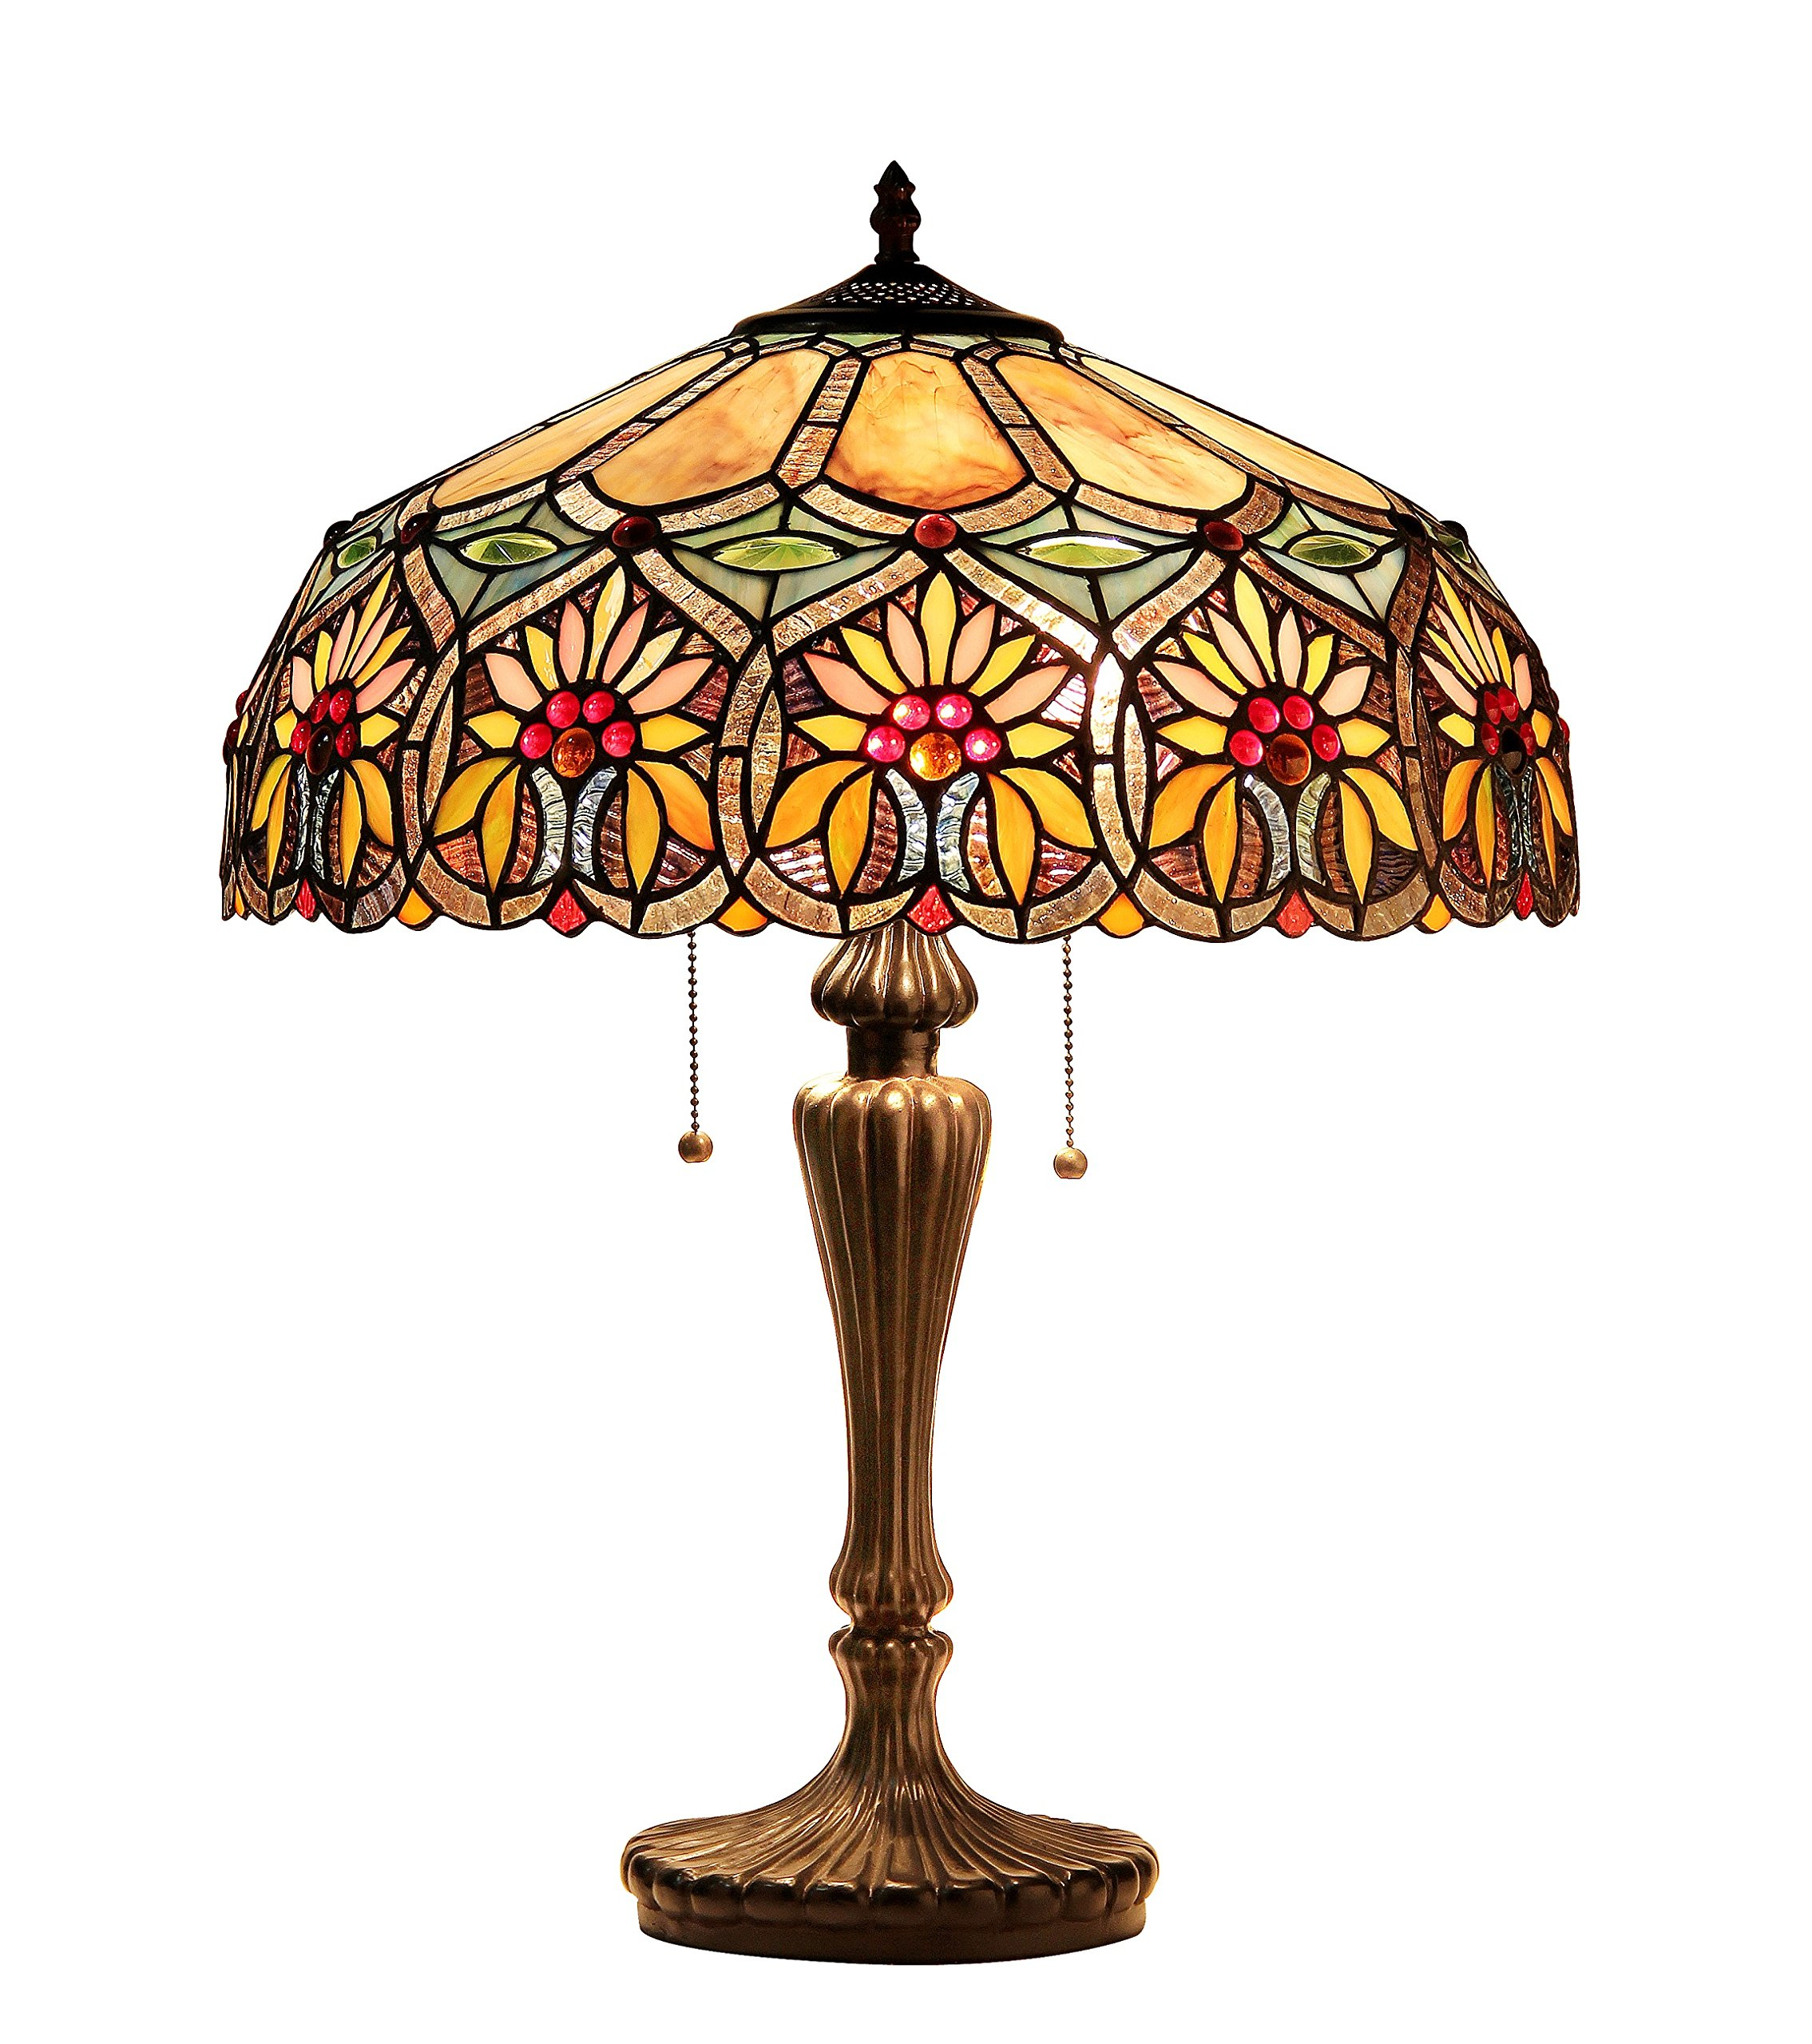 """Chloe Lighting CH33453BF18-TL2 Sunny Tiffany-Style Floral 2-Light Table Lamp, 24.6 x 17.7 x 17.7"""", Multicolor"""